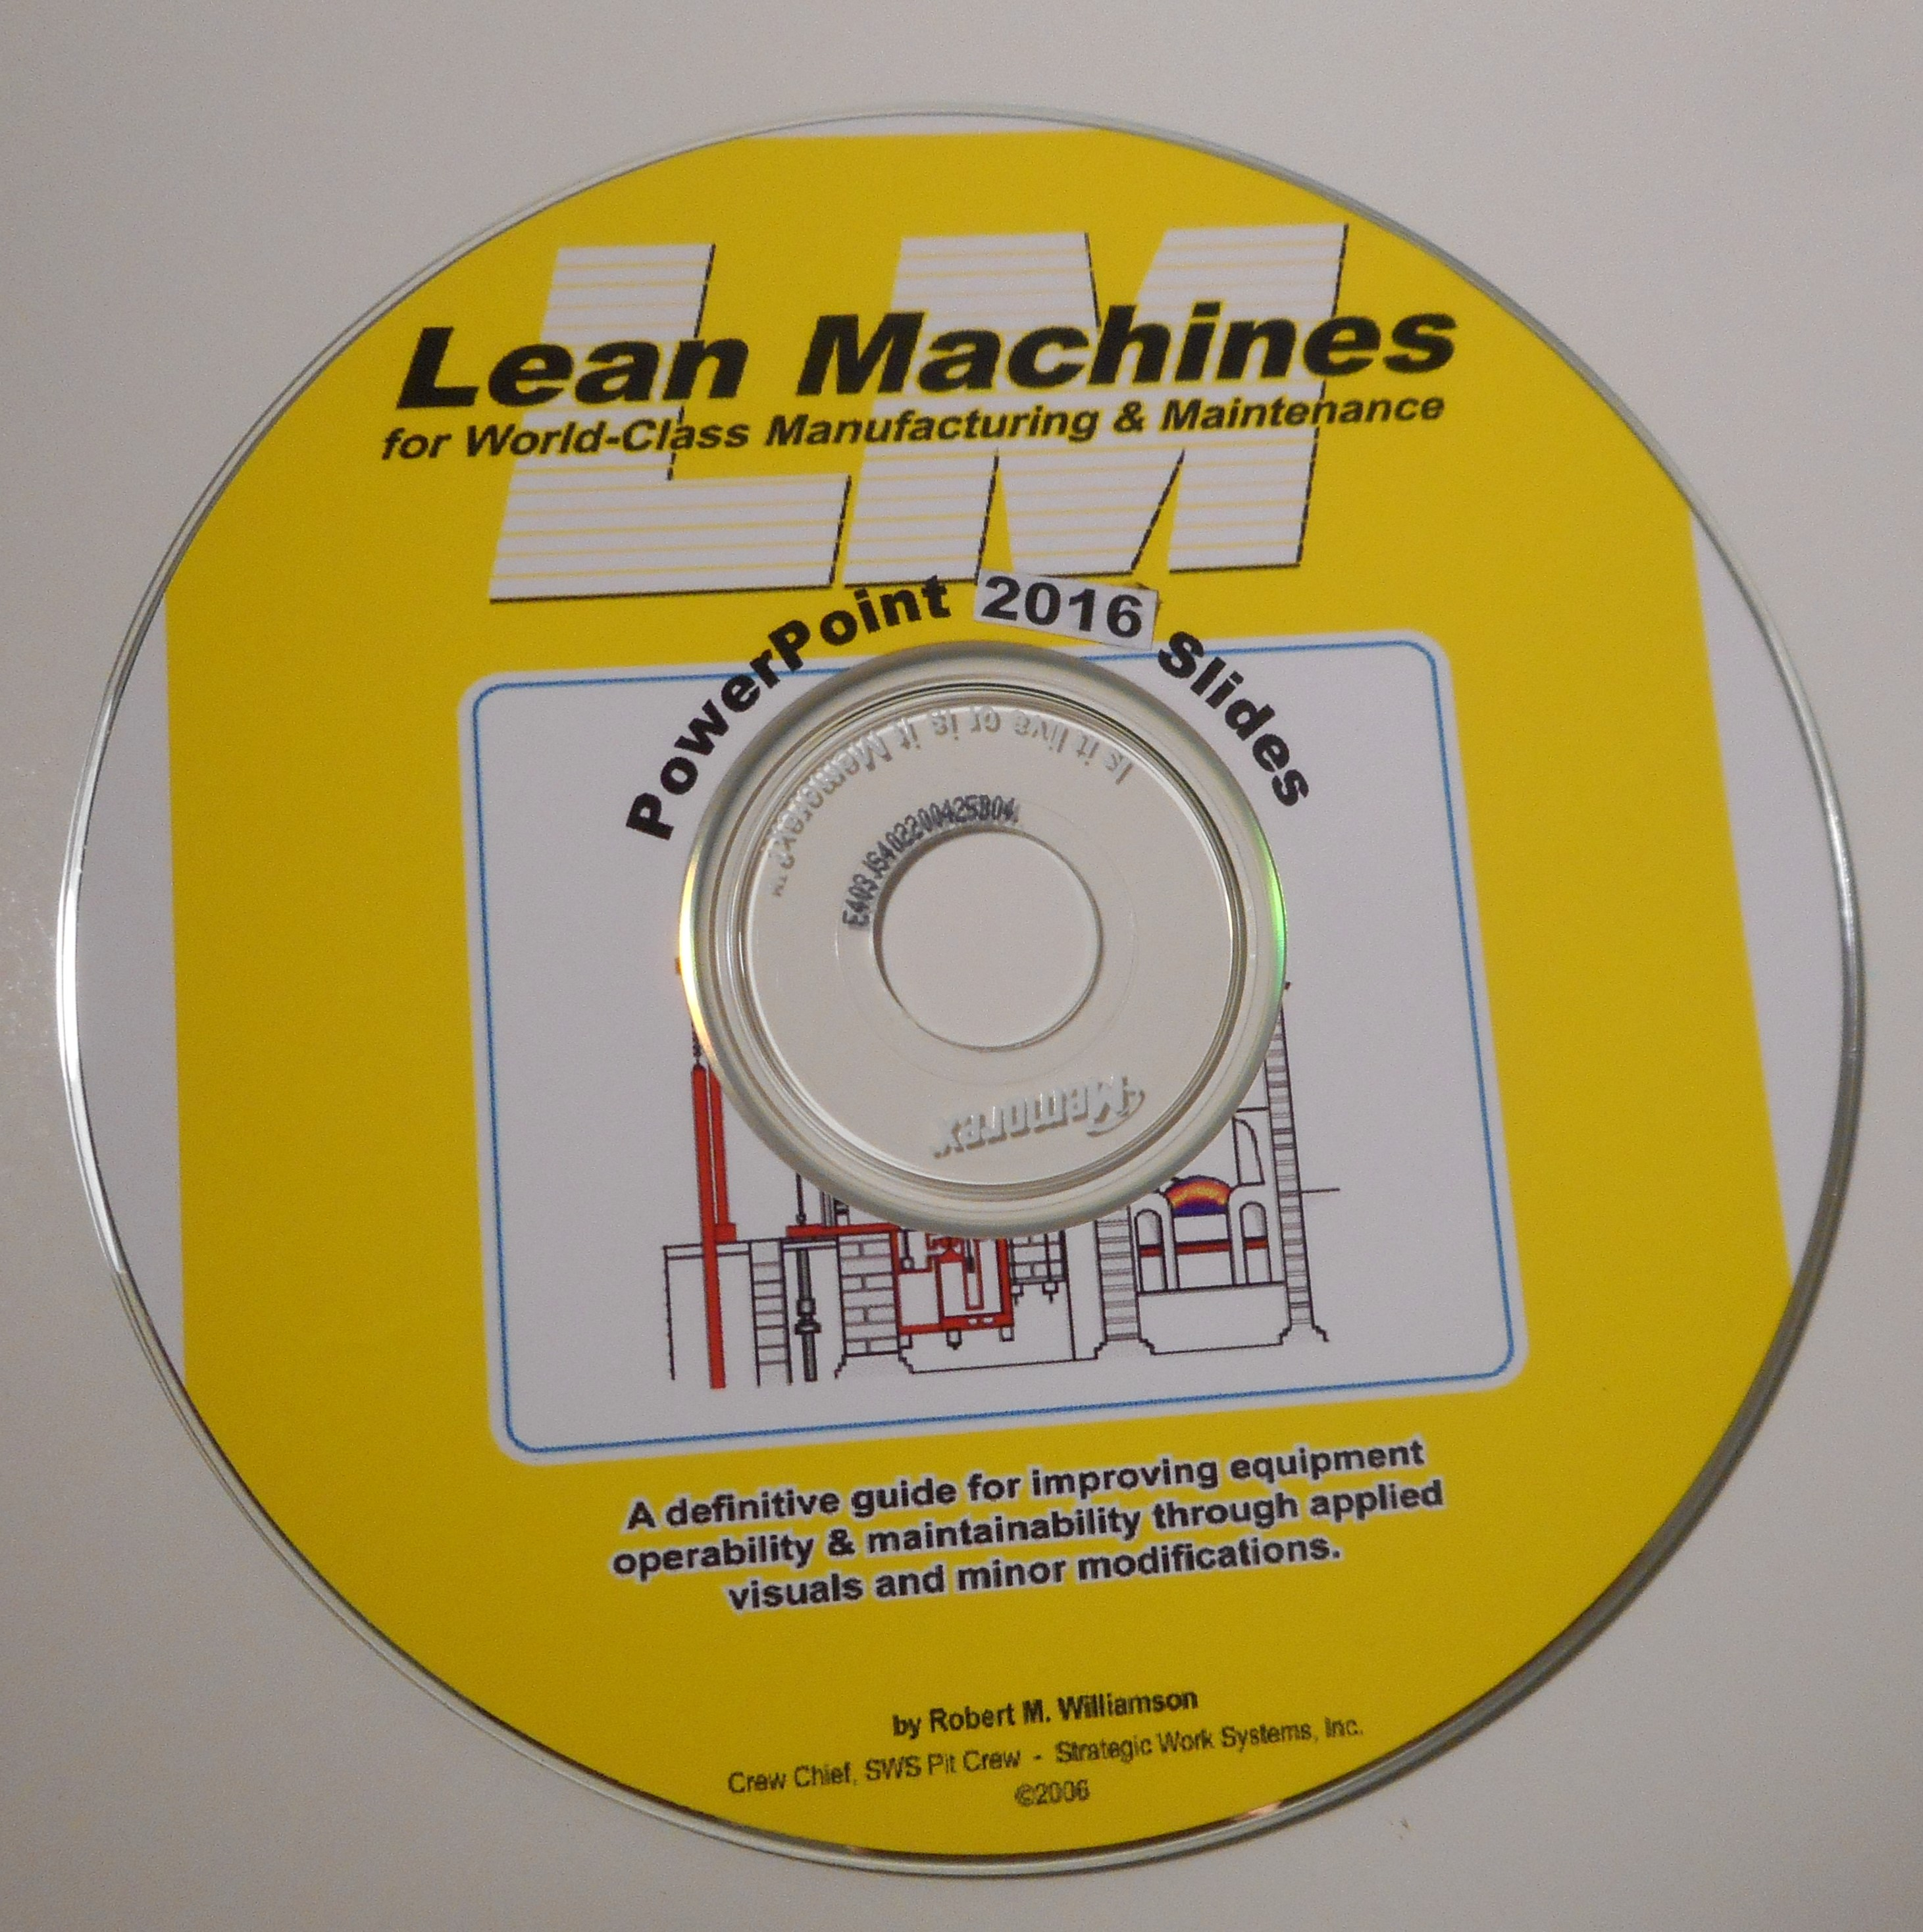 Lean Machines for World-Class Manufacturing and Maintenance Power Point